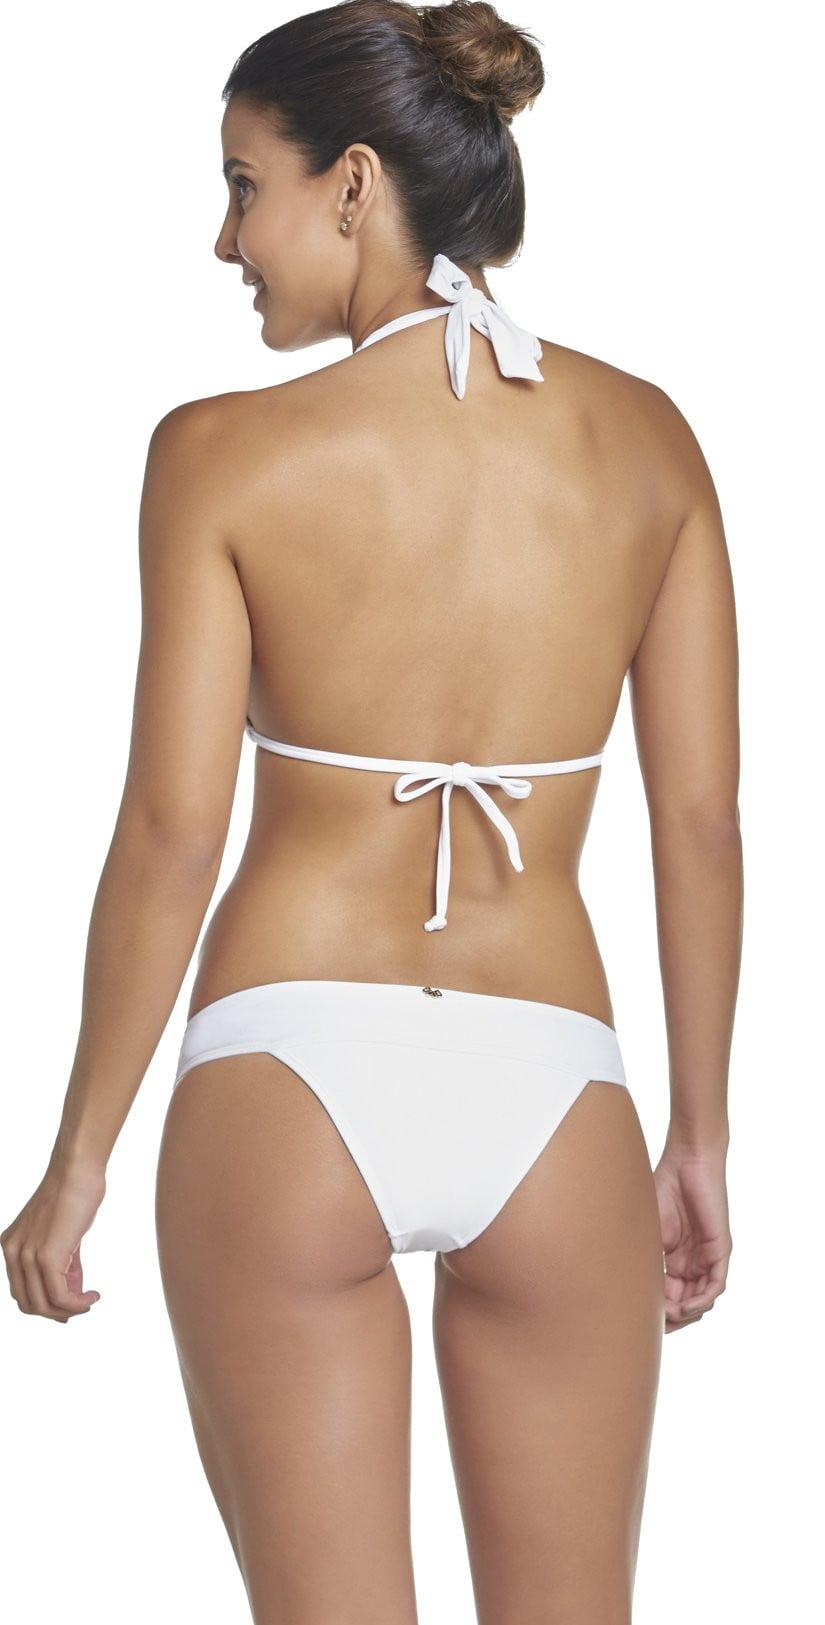 PilyQ Water Lily Lace Teeny Bikini Bottom in White WAT-222T: